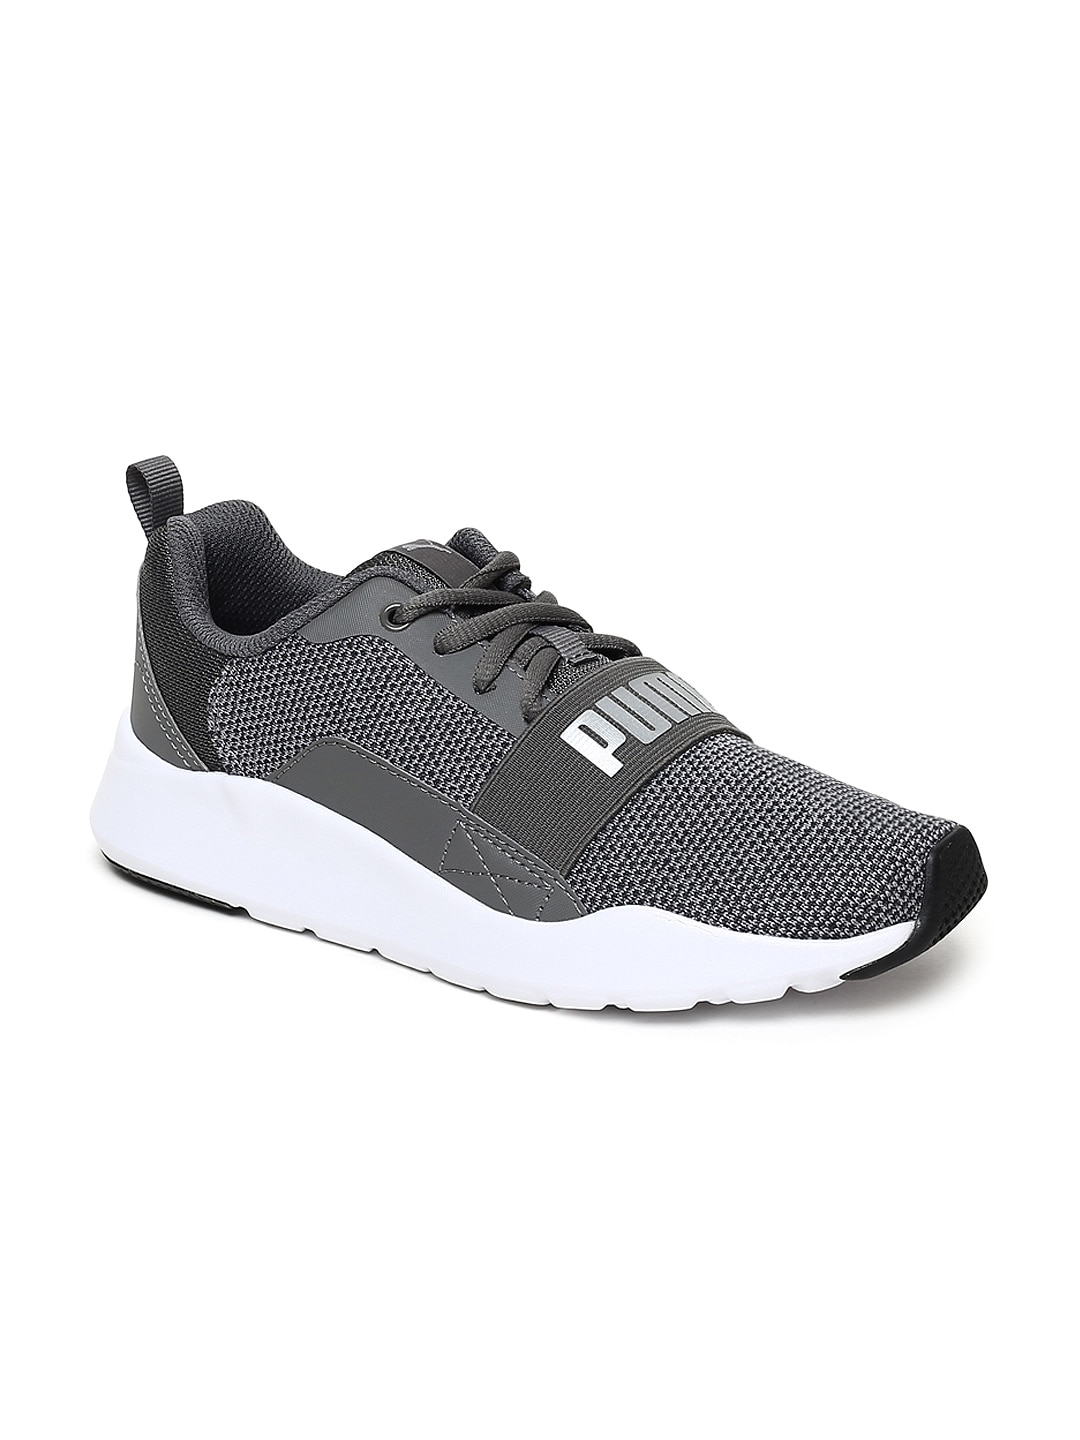 95385bb2478 Puma White Shoes - Buy Puma White Shoes online in India